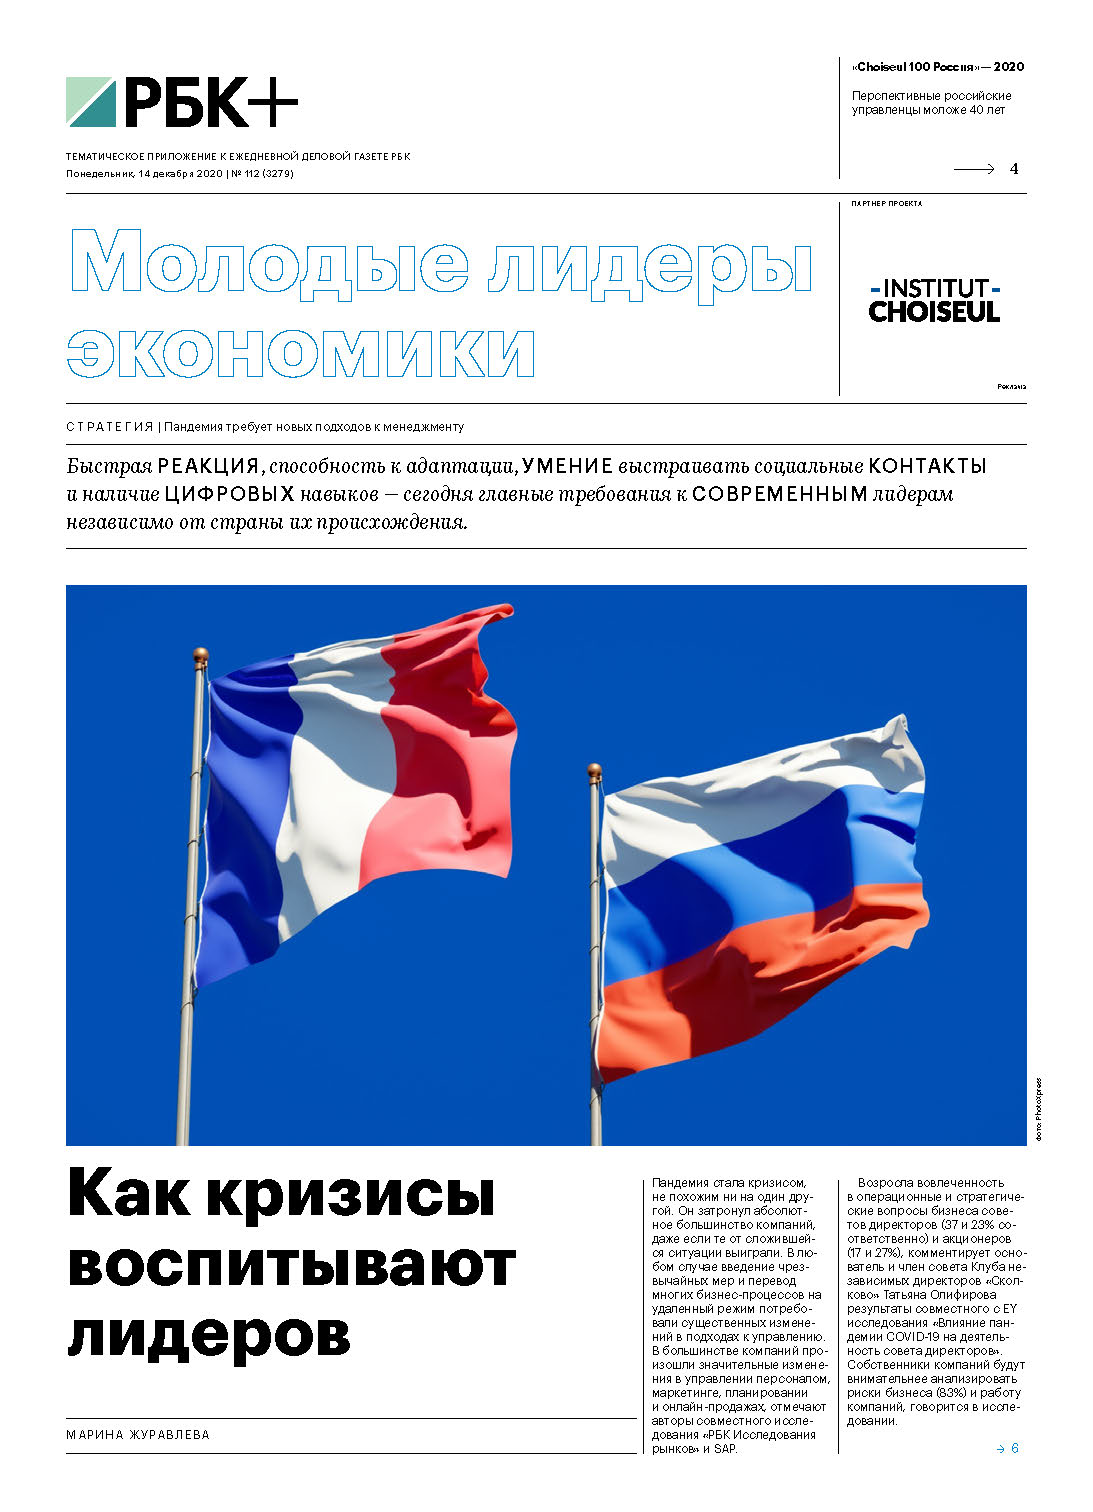 Choiseul 100 Russia 2020 :  RBK Daily Newspaper Issue